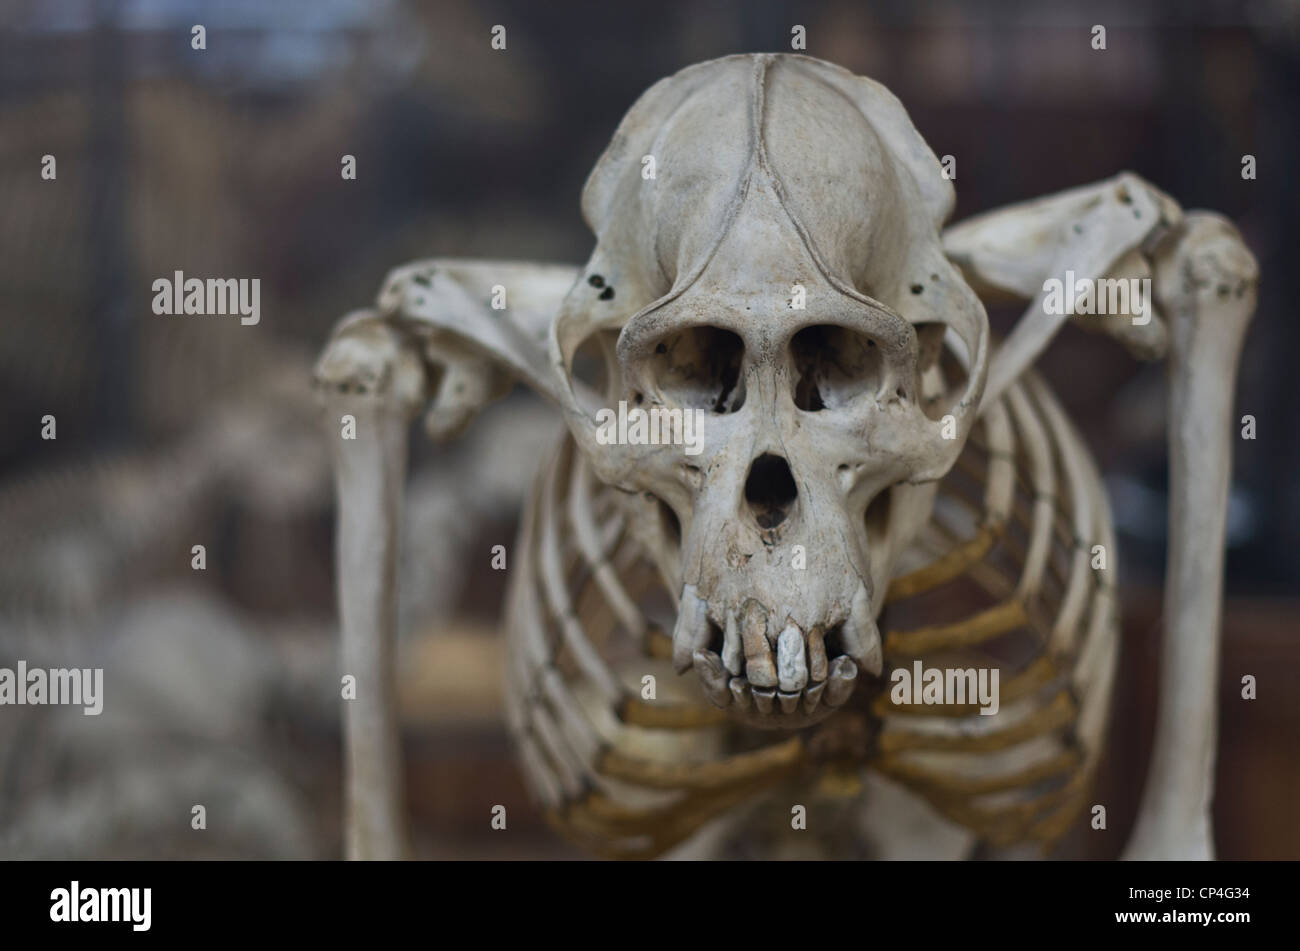 Museum of natural history of Paris. A primate skeleton. - Stock Image